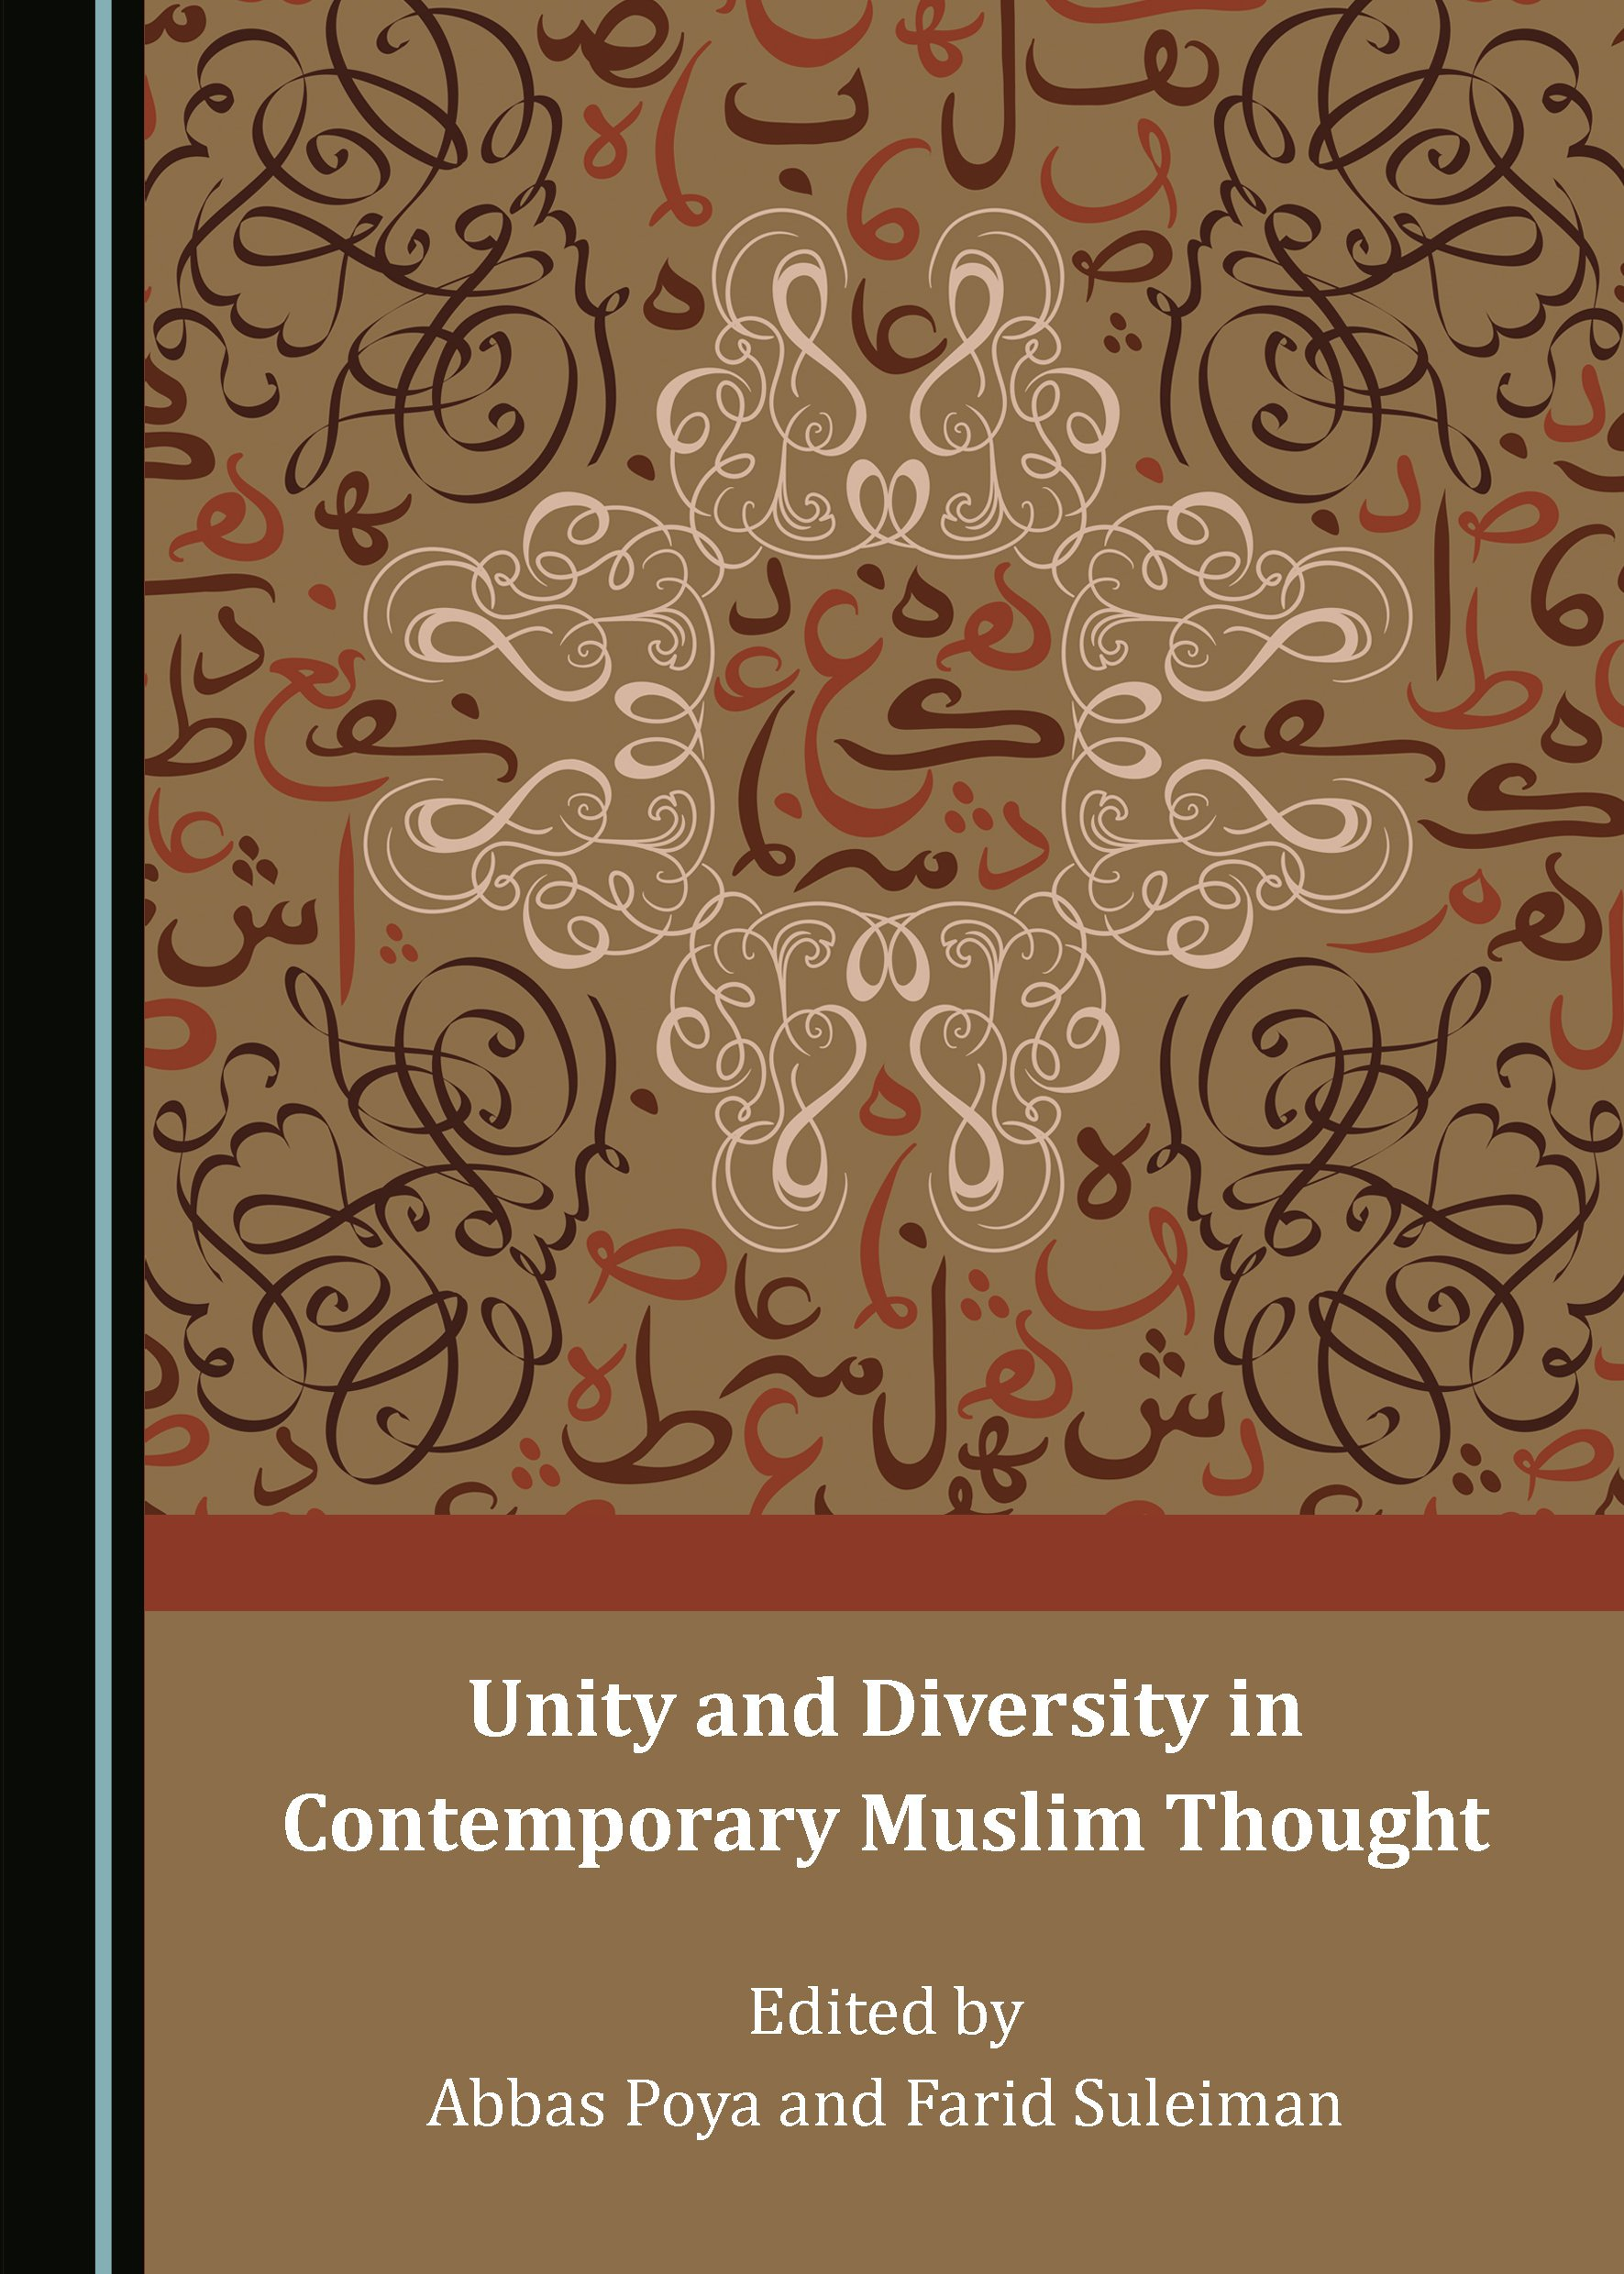 Unity and Diversity in Contemporary Muslim Thought